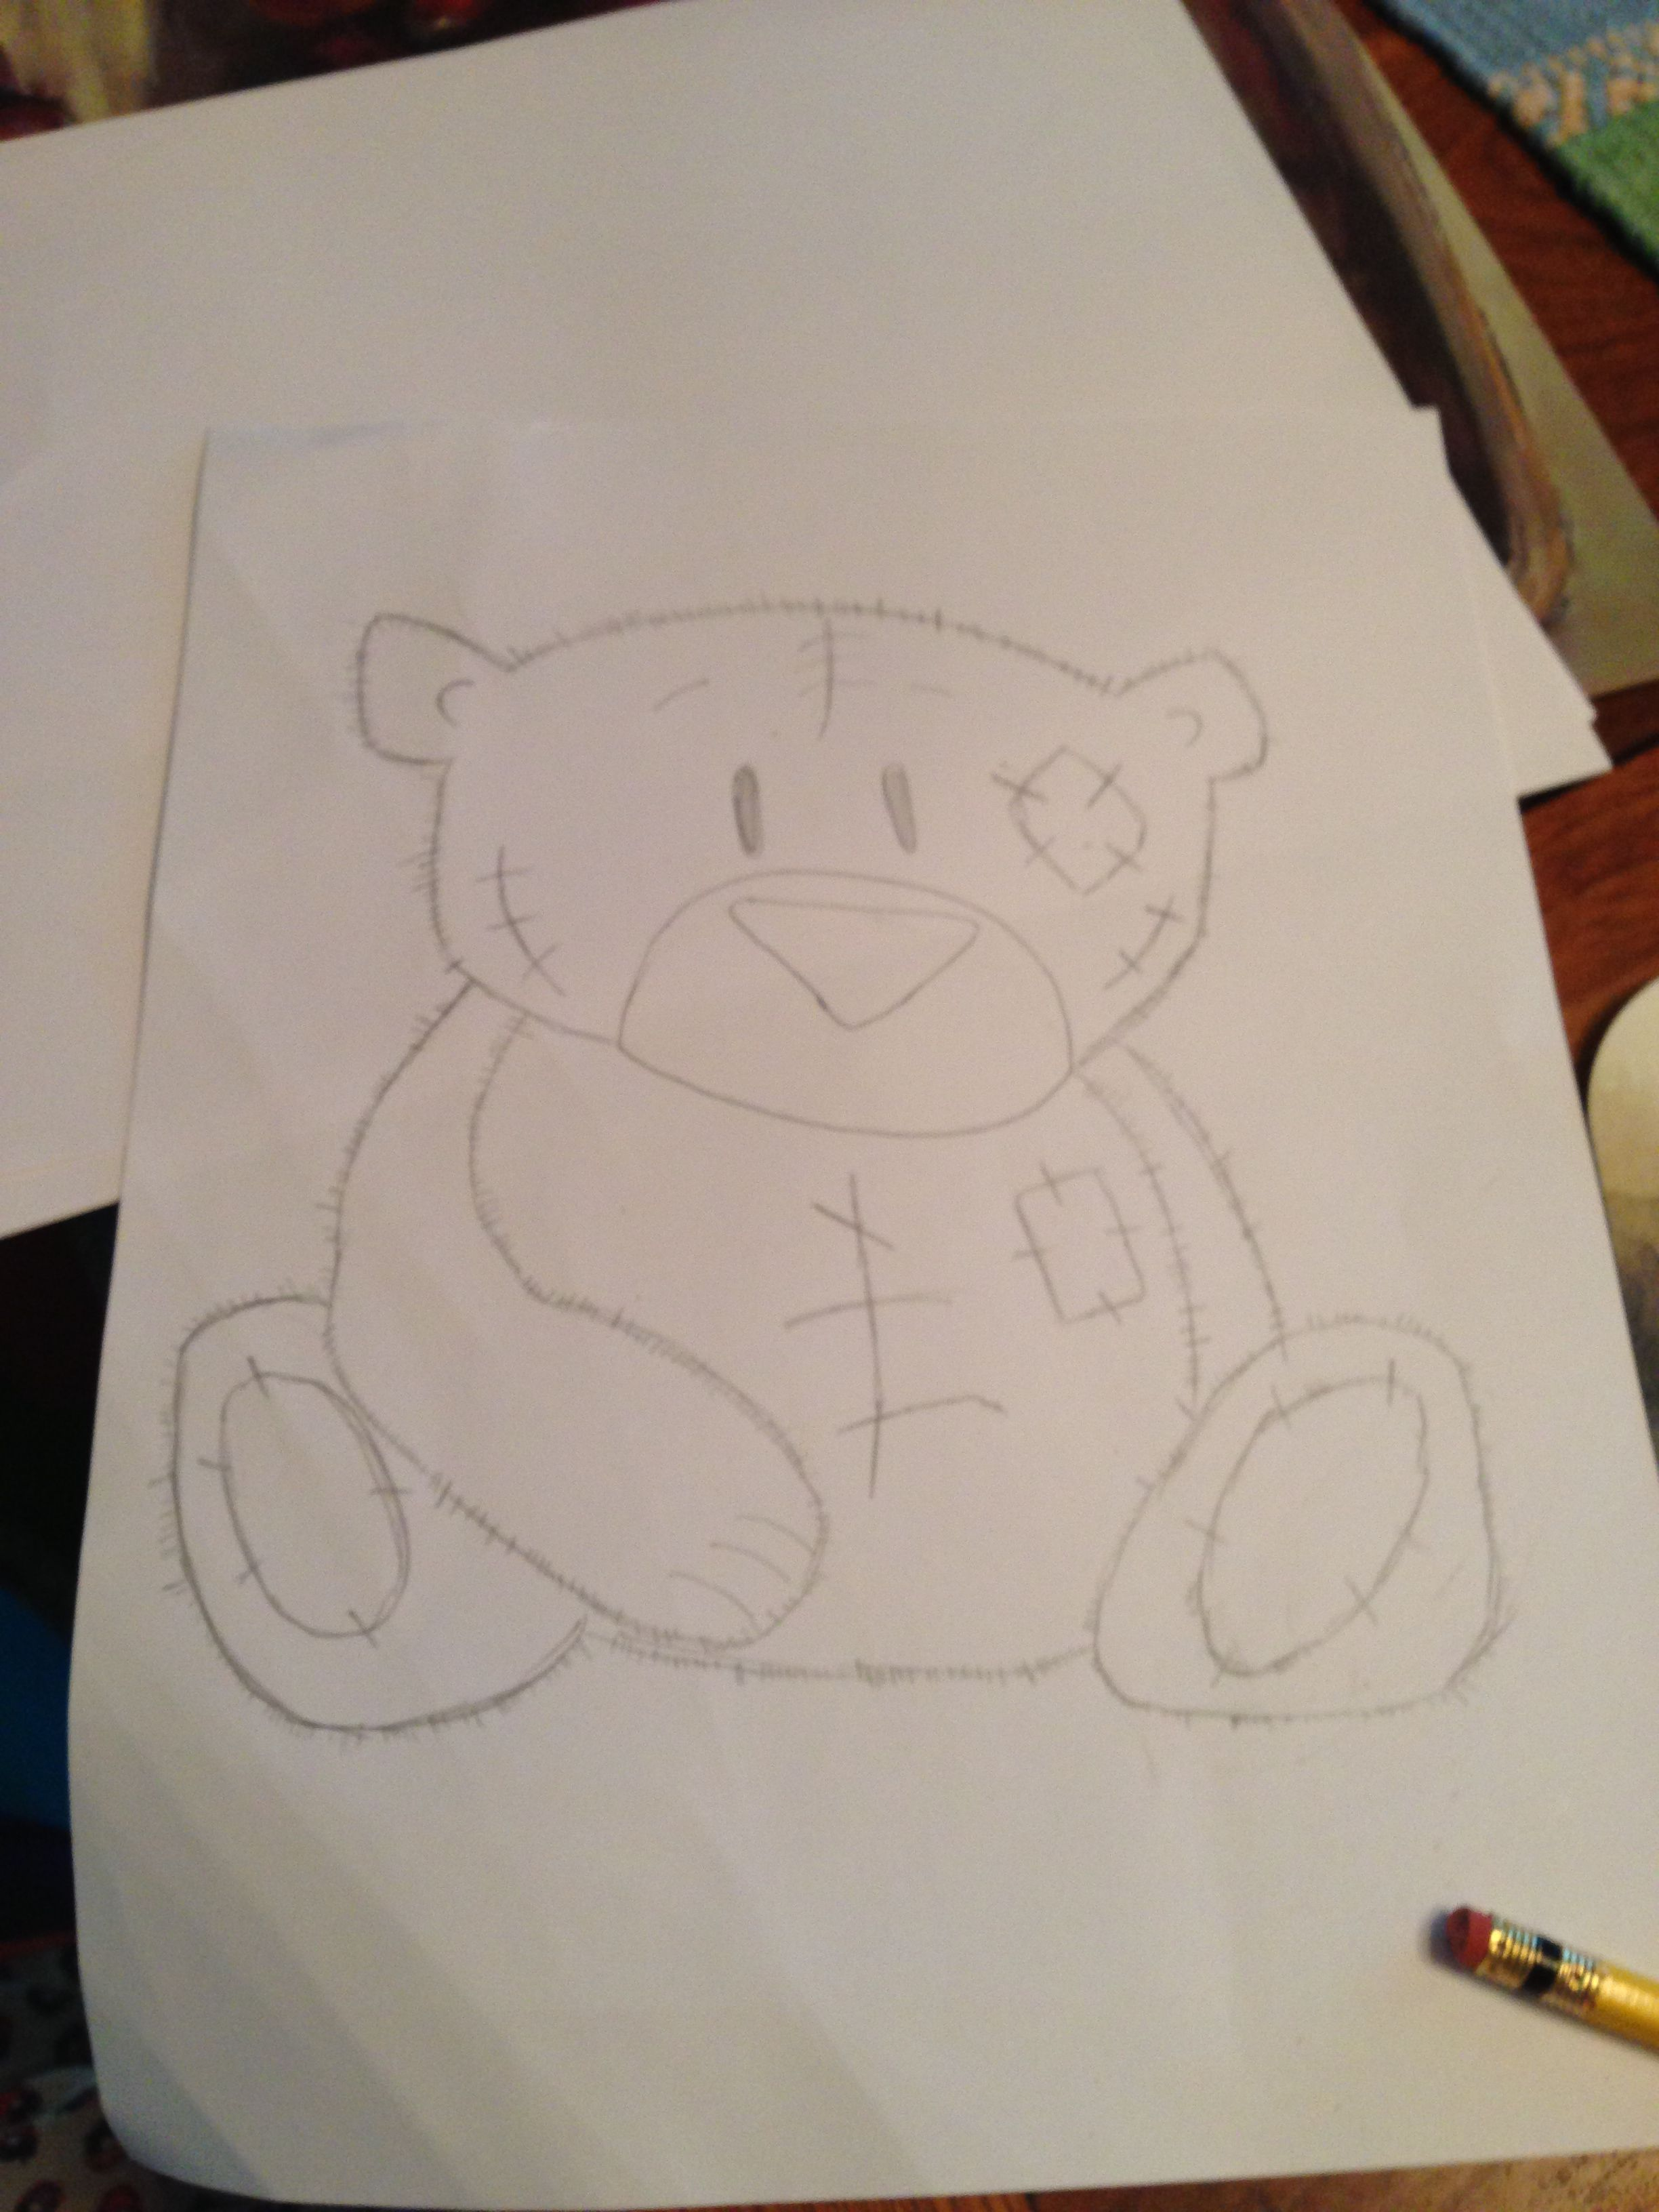 Teddy bear-things to draw